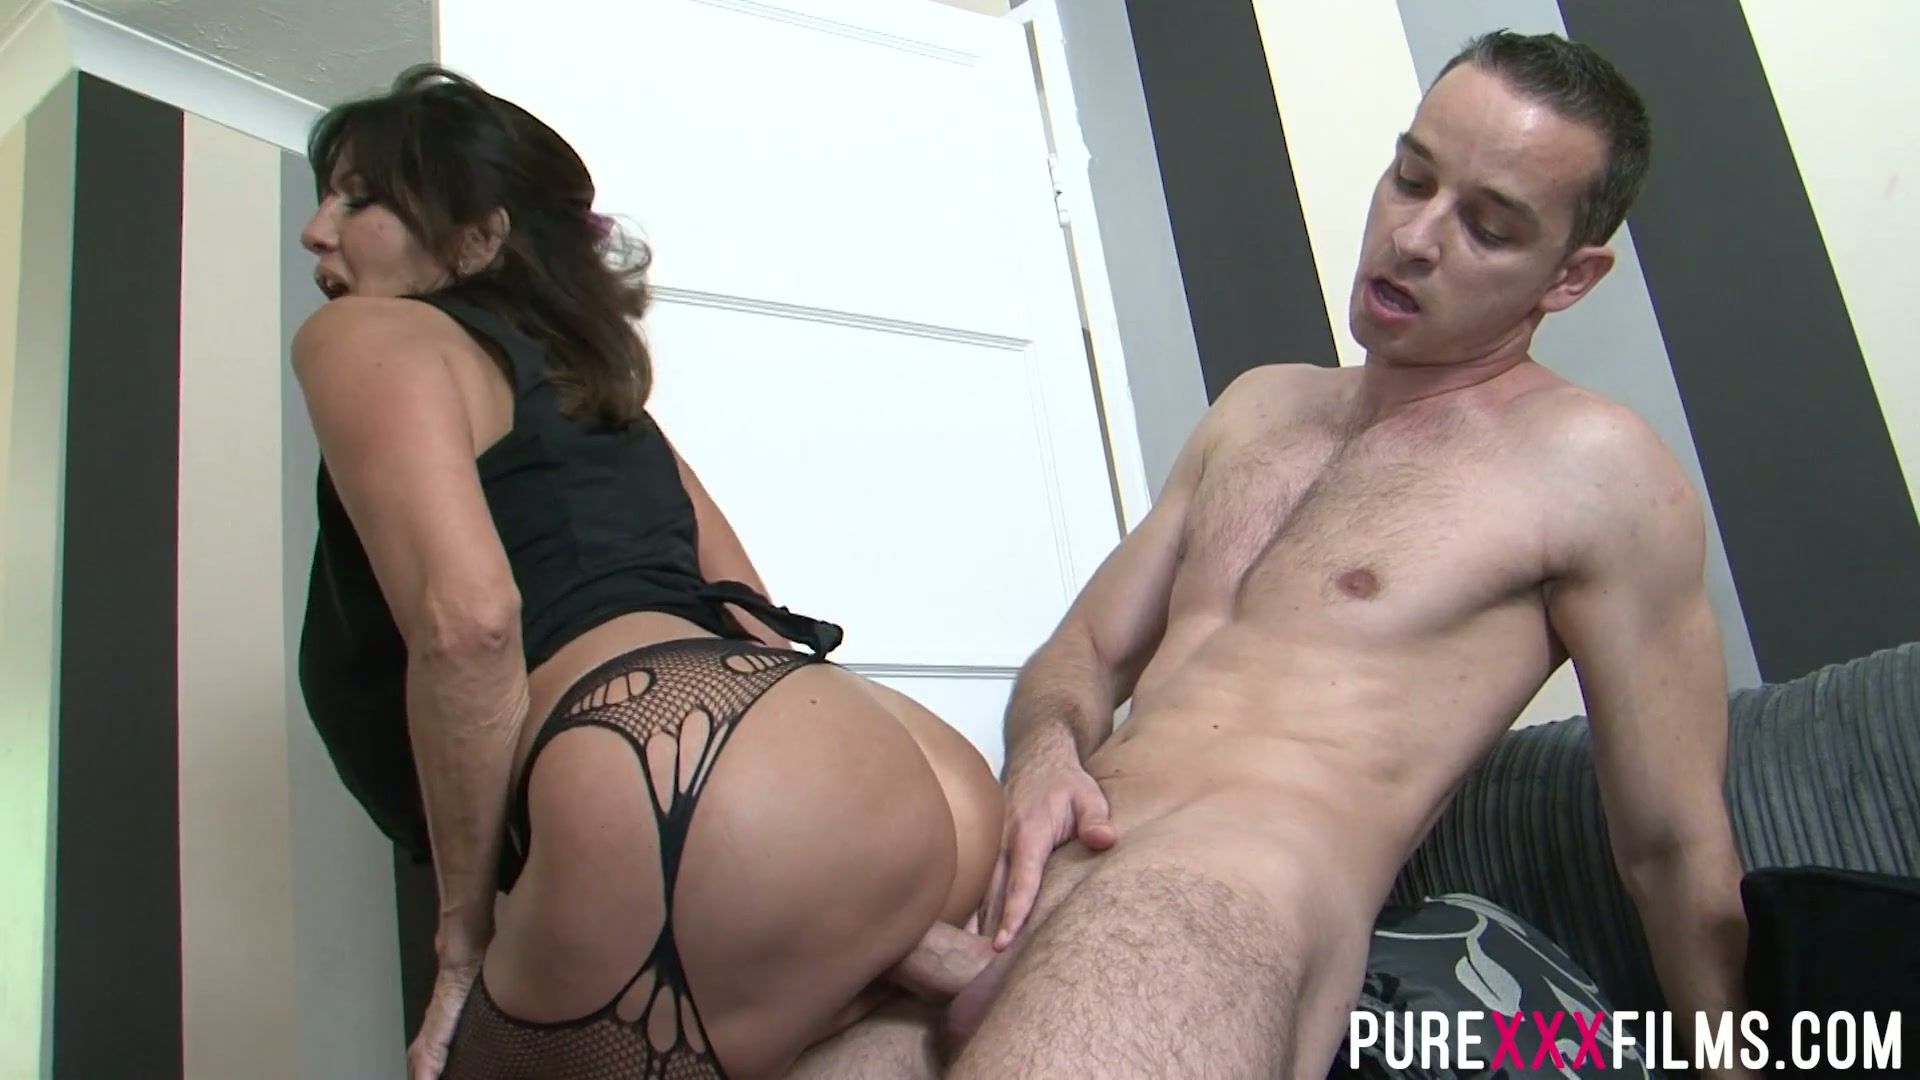 Slutty stepmom Tara Holiday spreads legs in front of her stepson